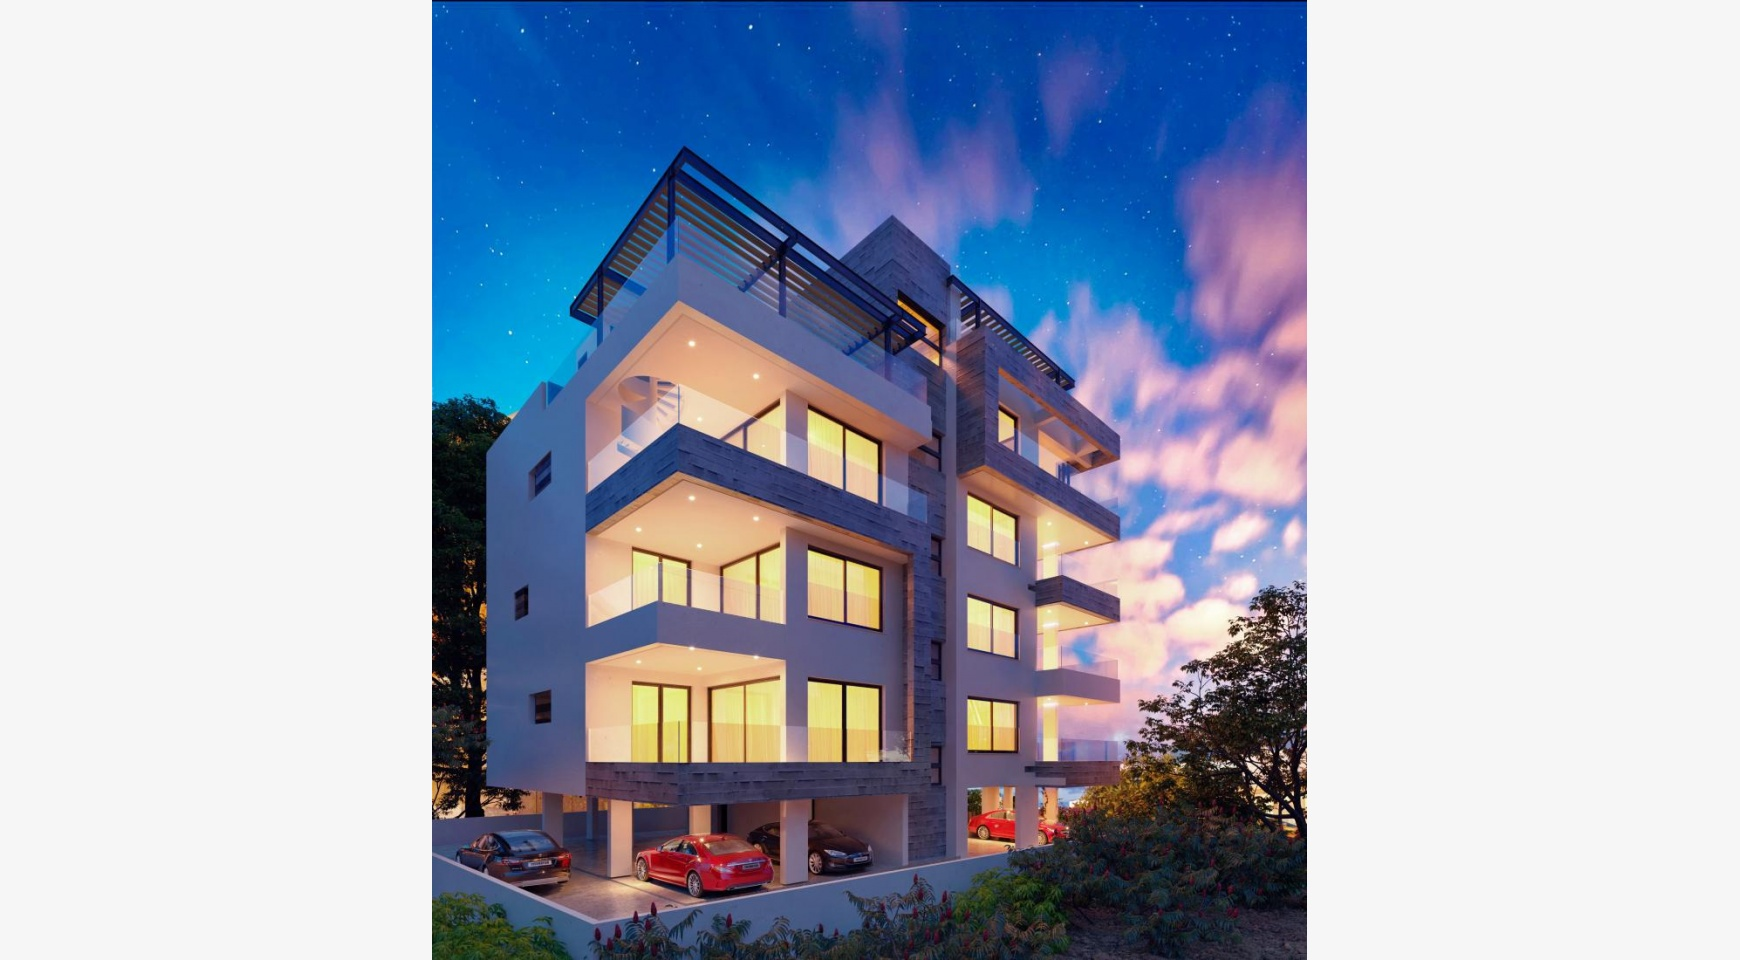 New 3 Bedroom Apartment in a Modern Building near the Sea - 3